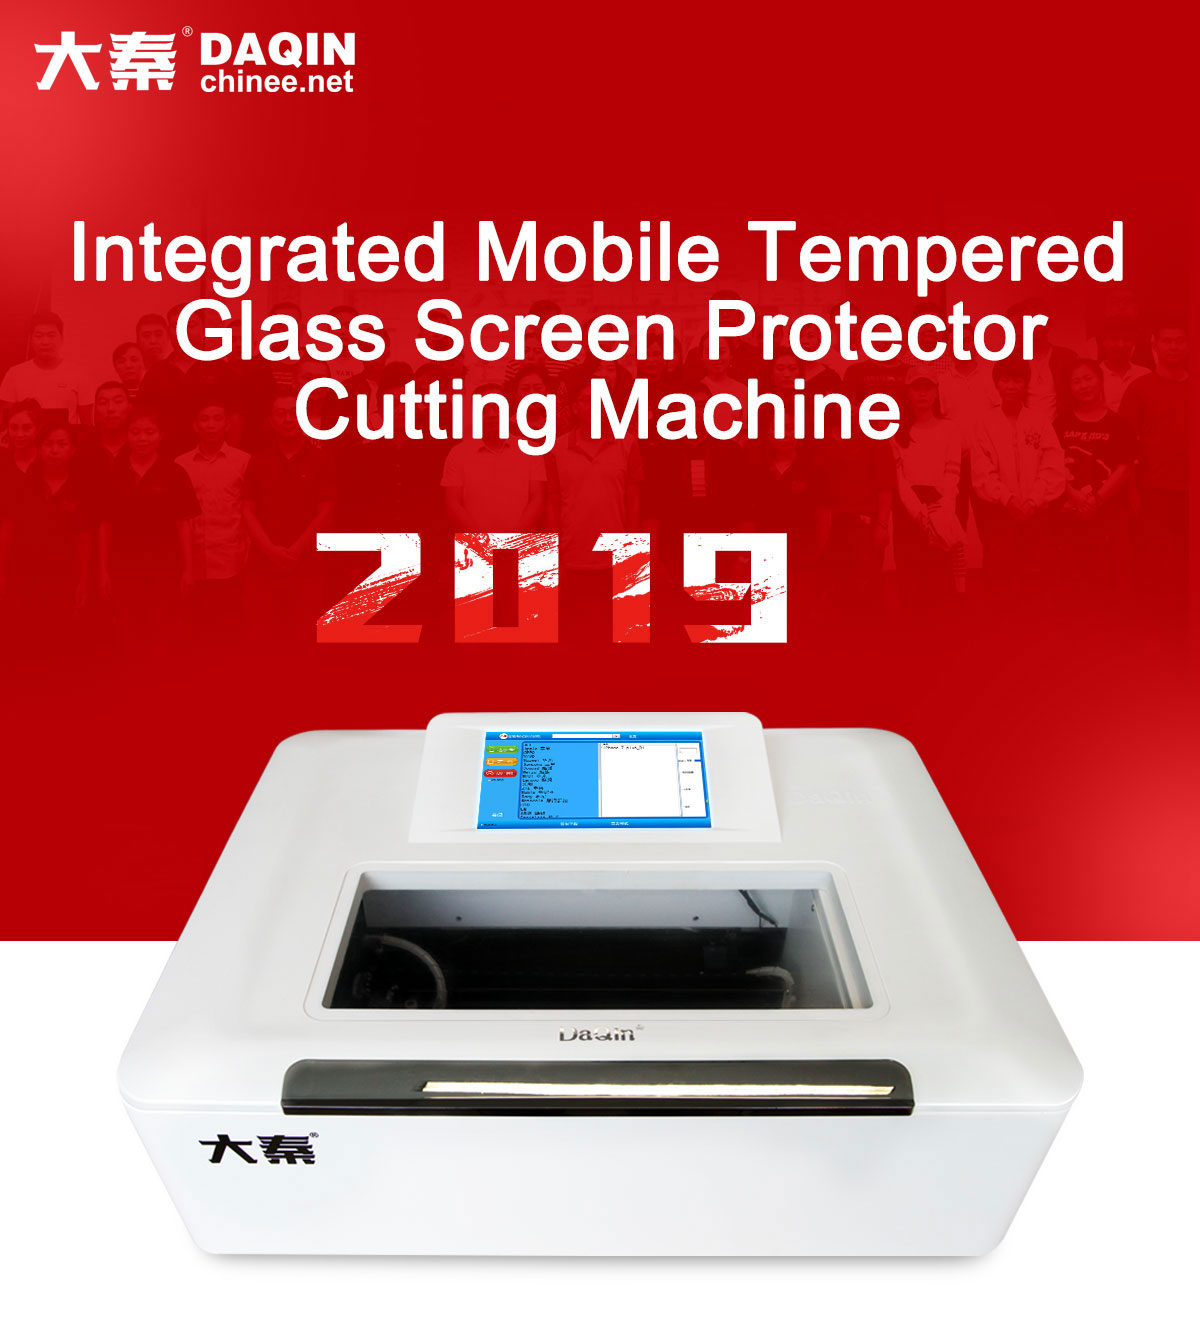 Daqin mobile screen protector tempered glass cutting machine with CE certification